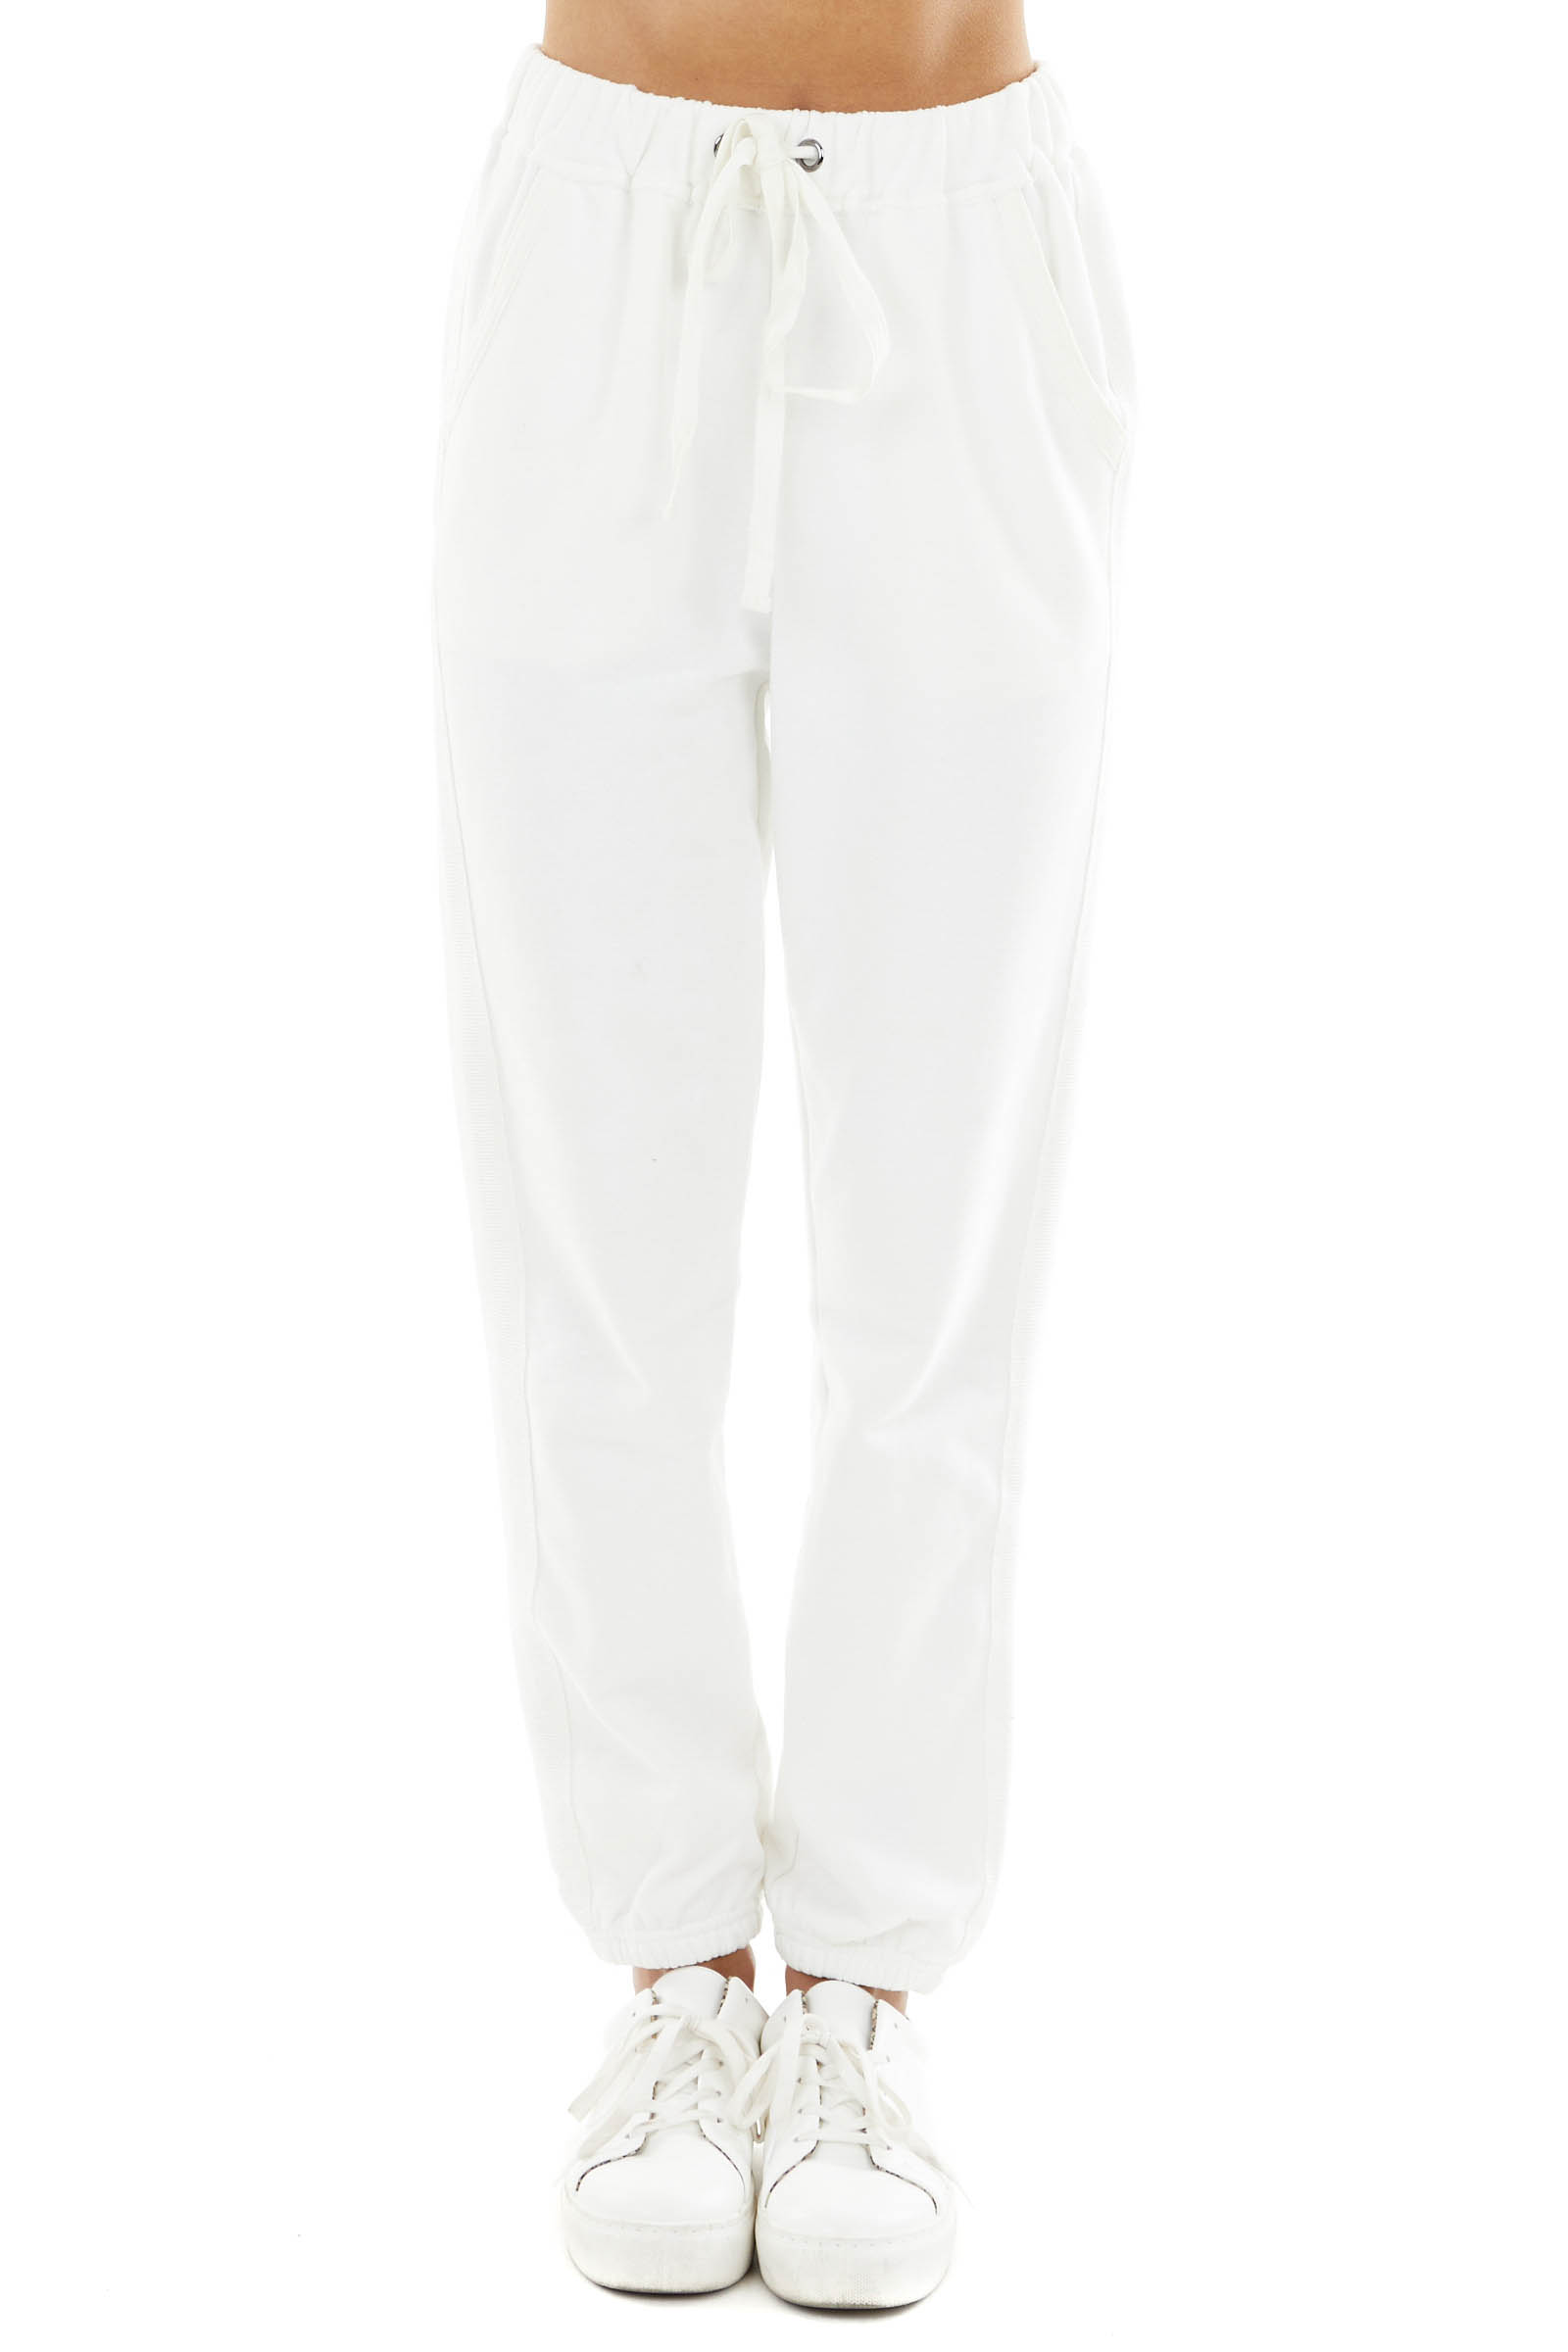 Ivory Drawstring Waist Sweatpants with Elastic Cuff